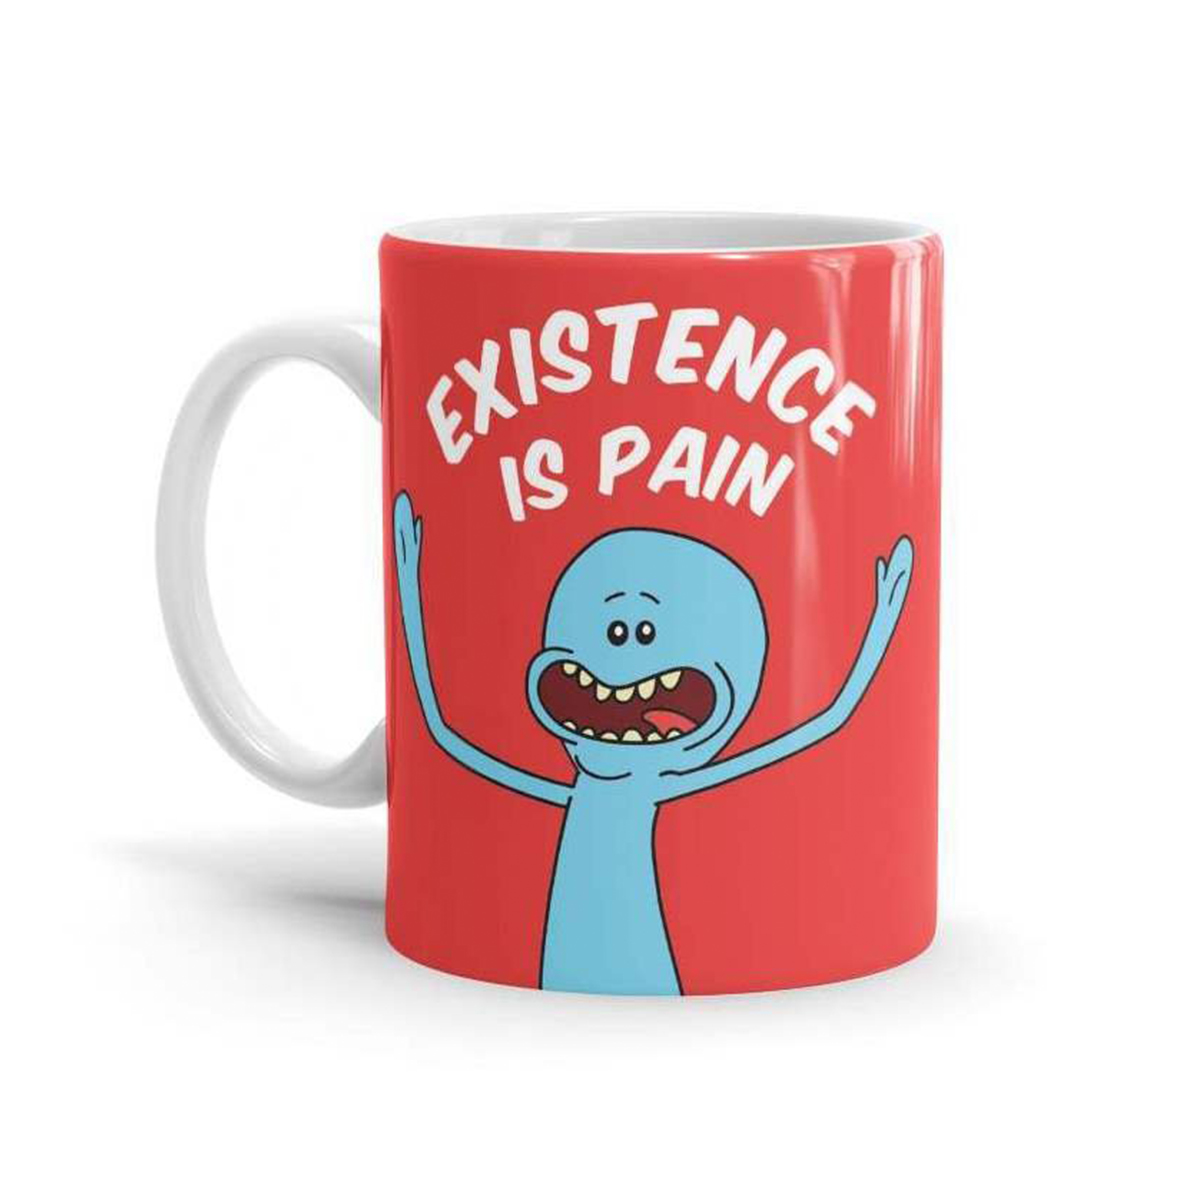 + Depressing mug - Because we all know this is a fact, whether you like Rick and Morty or not.(Image via WickedGiftStore on Etsy)